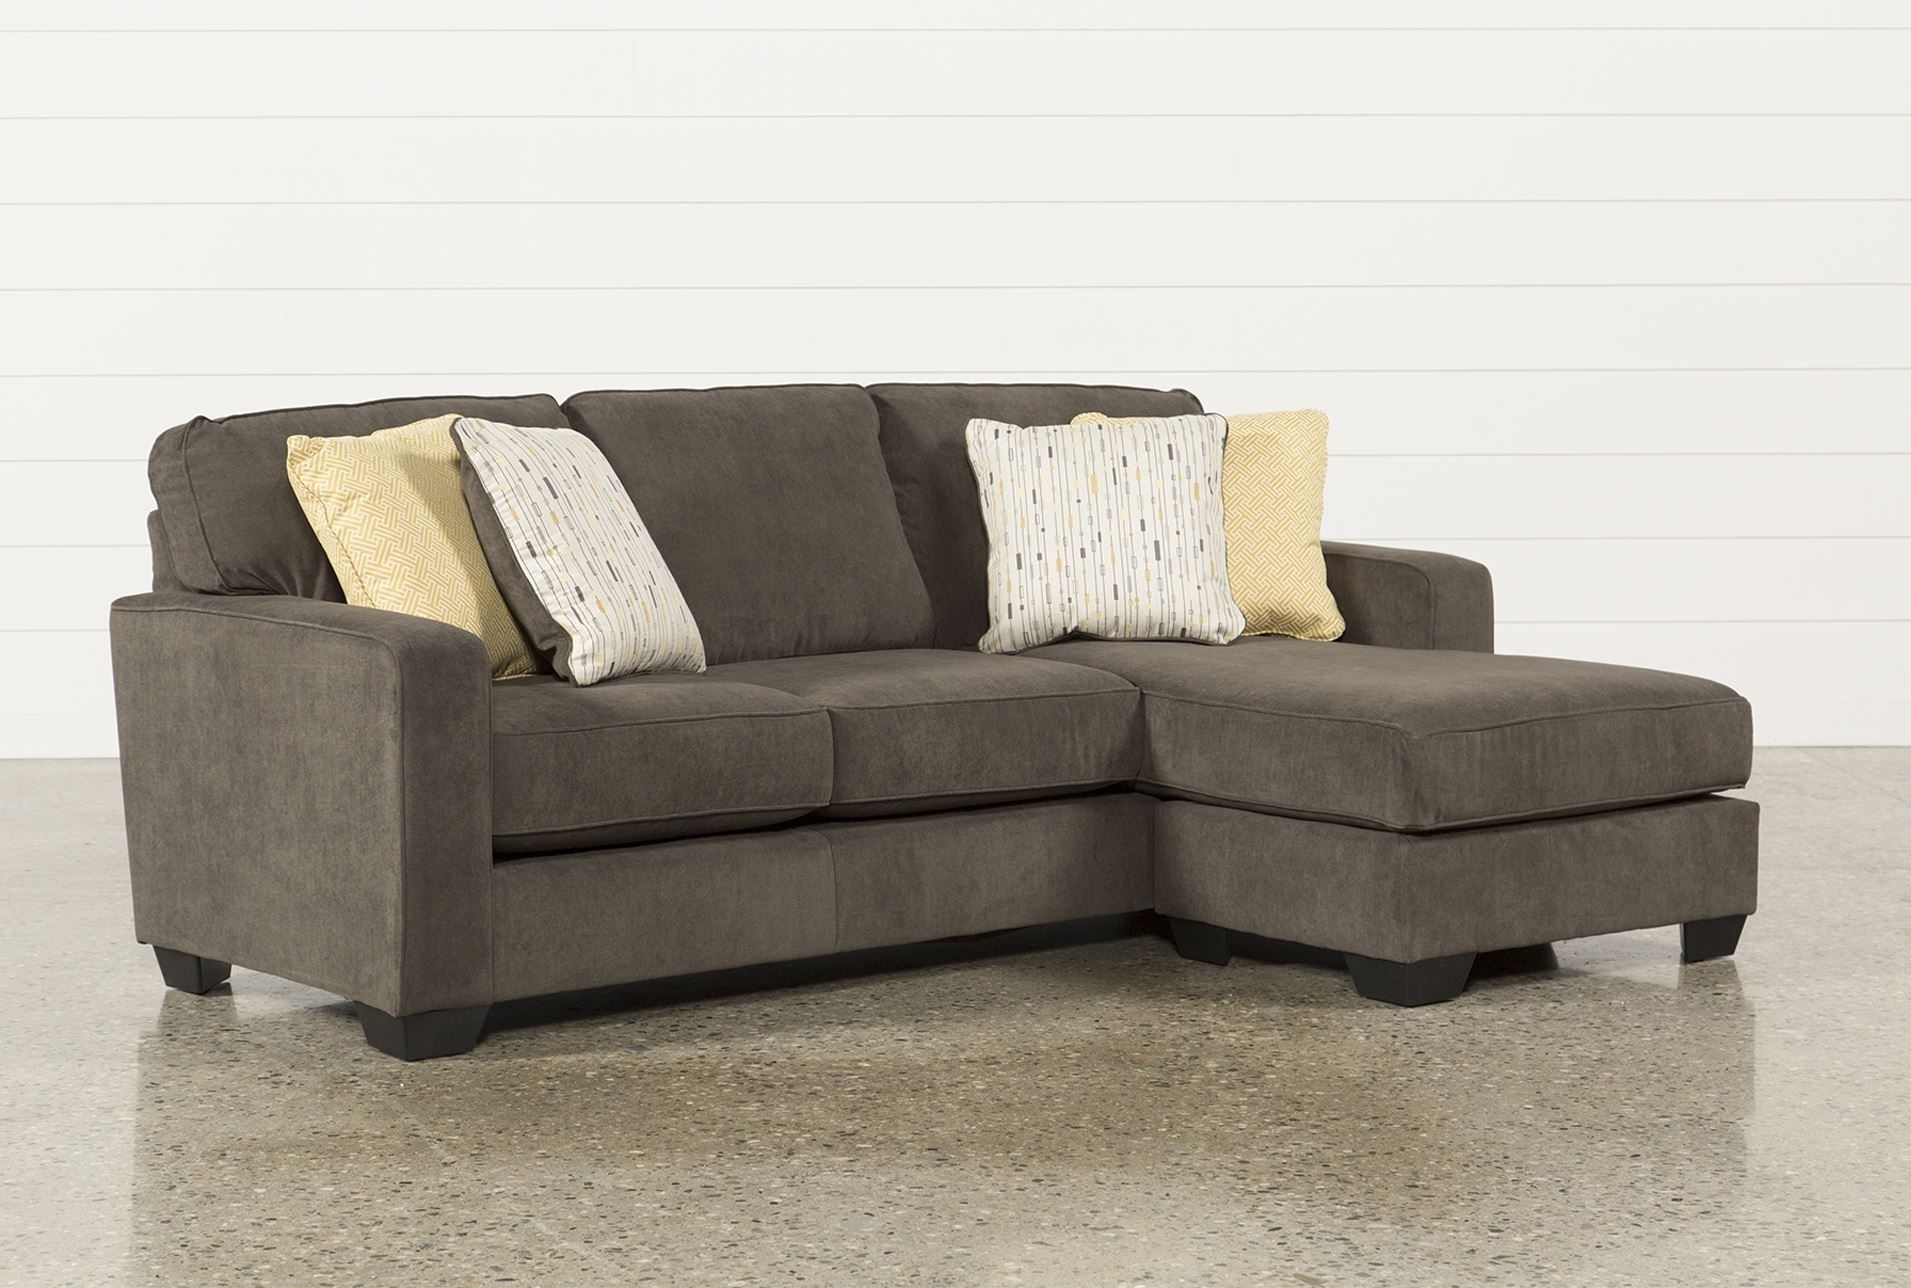 Hodan Sofa/chaise | Home - | Pinterest | Living Spaces, Spaces And inside Mcculla Sofa Sectionals With Reversible Chaise (Image 13 of 30)